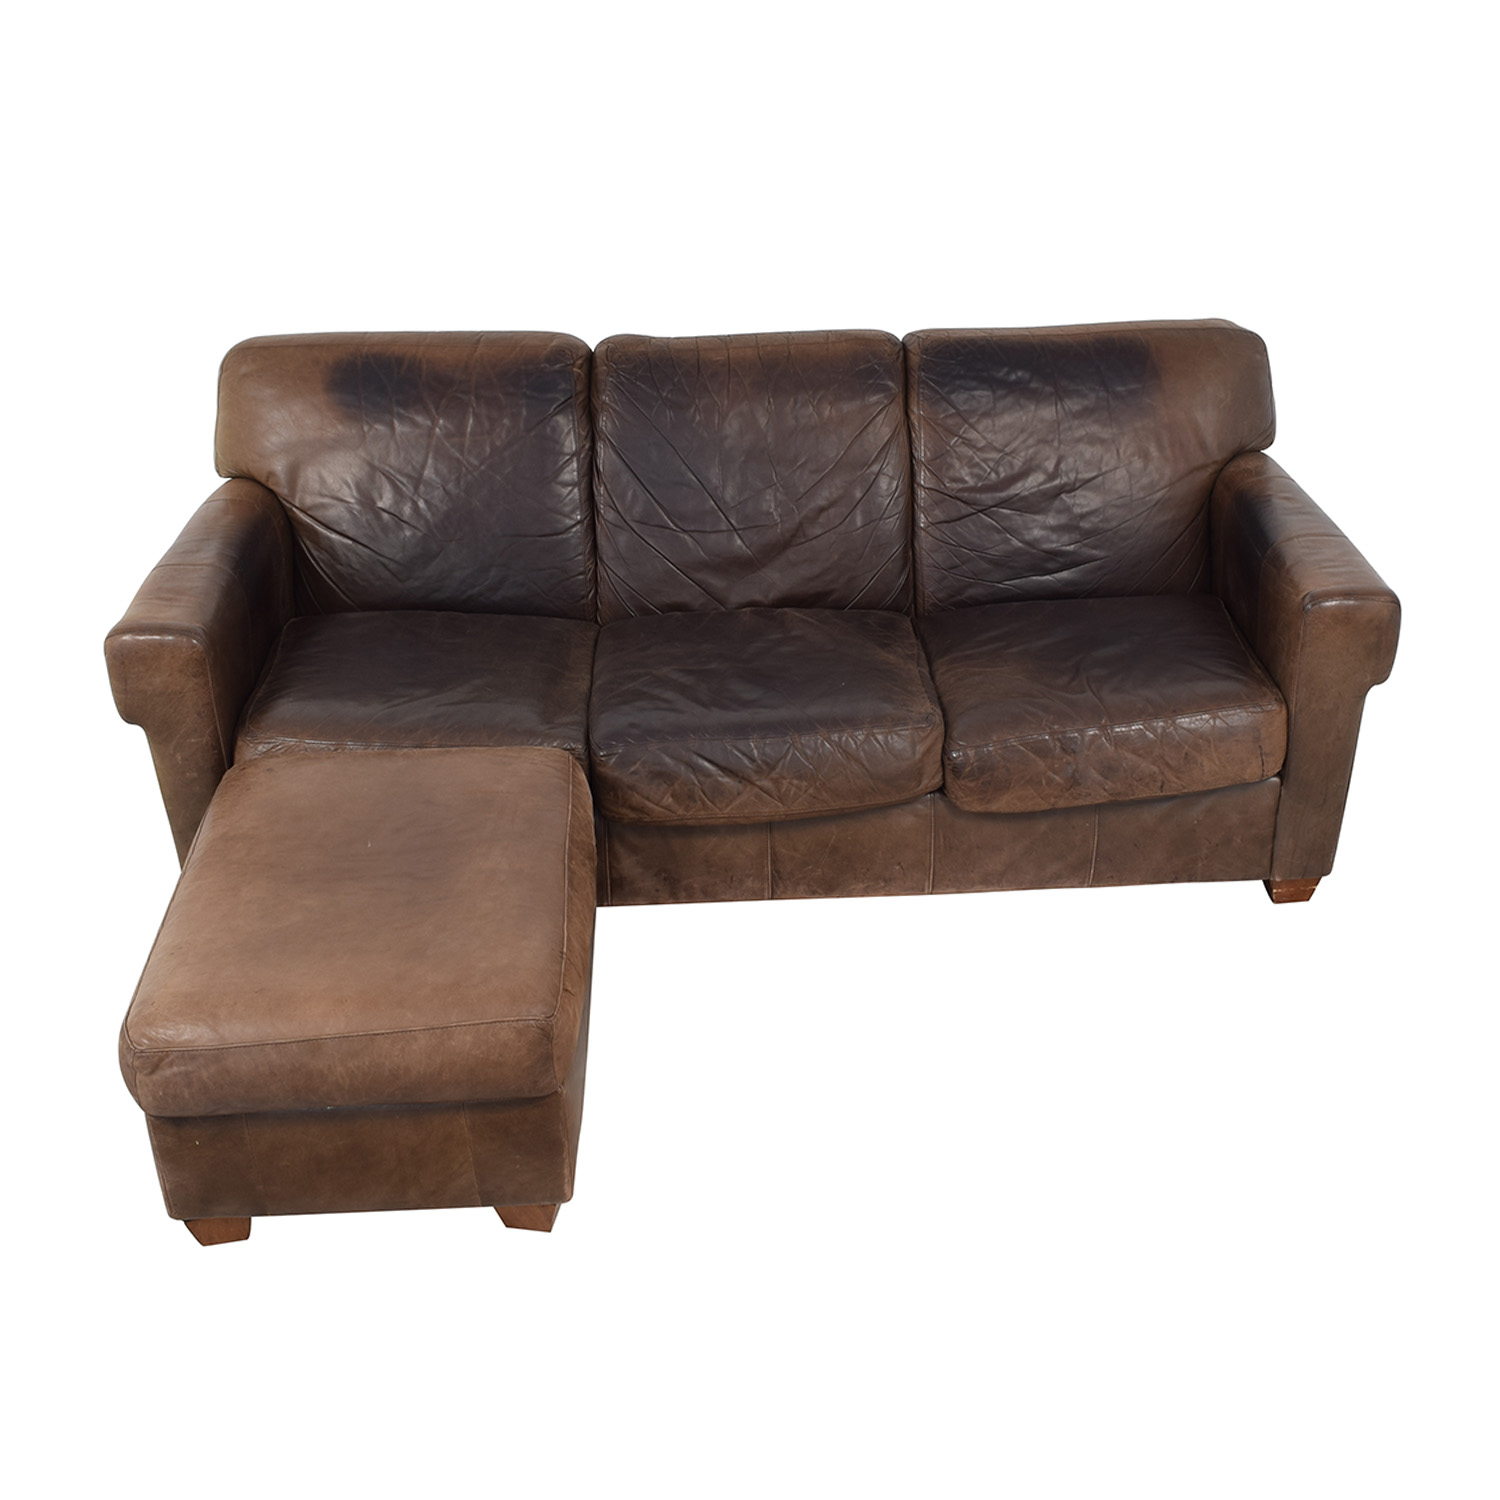 87 off distressed leather sofa with ottoman sofas